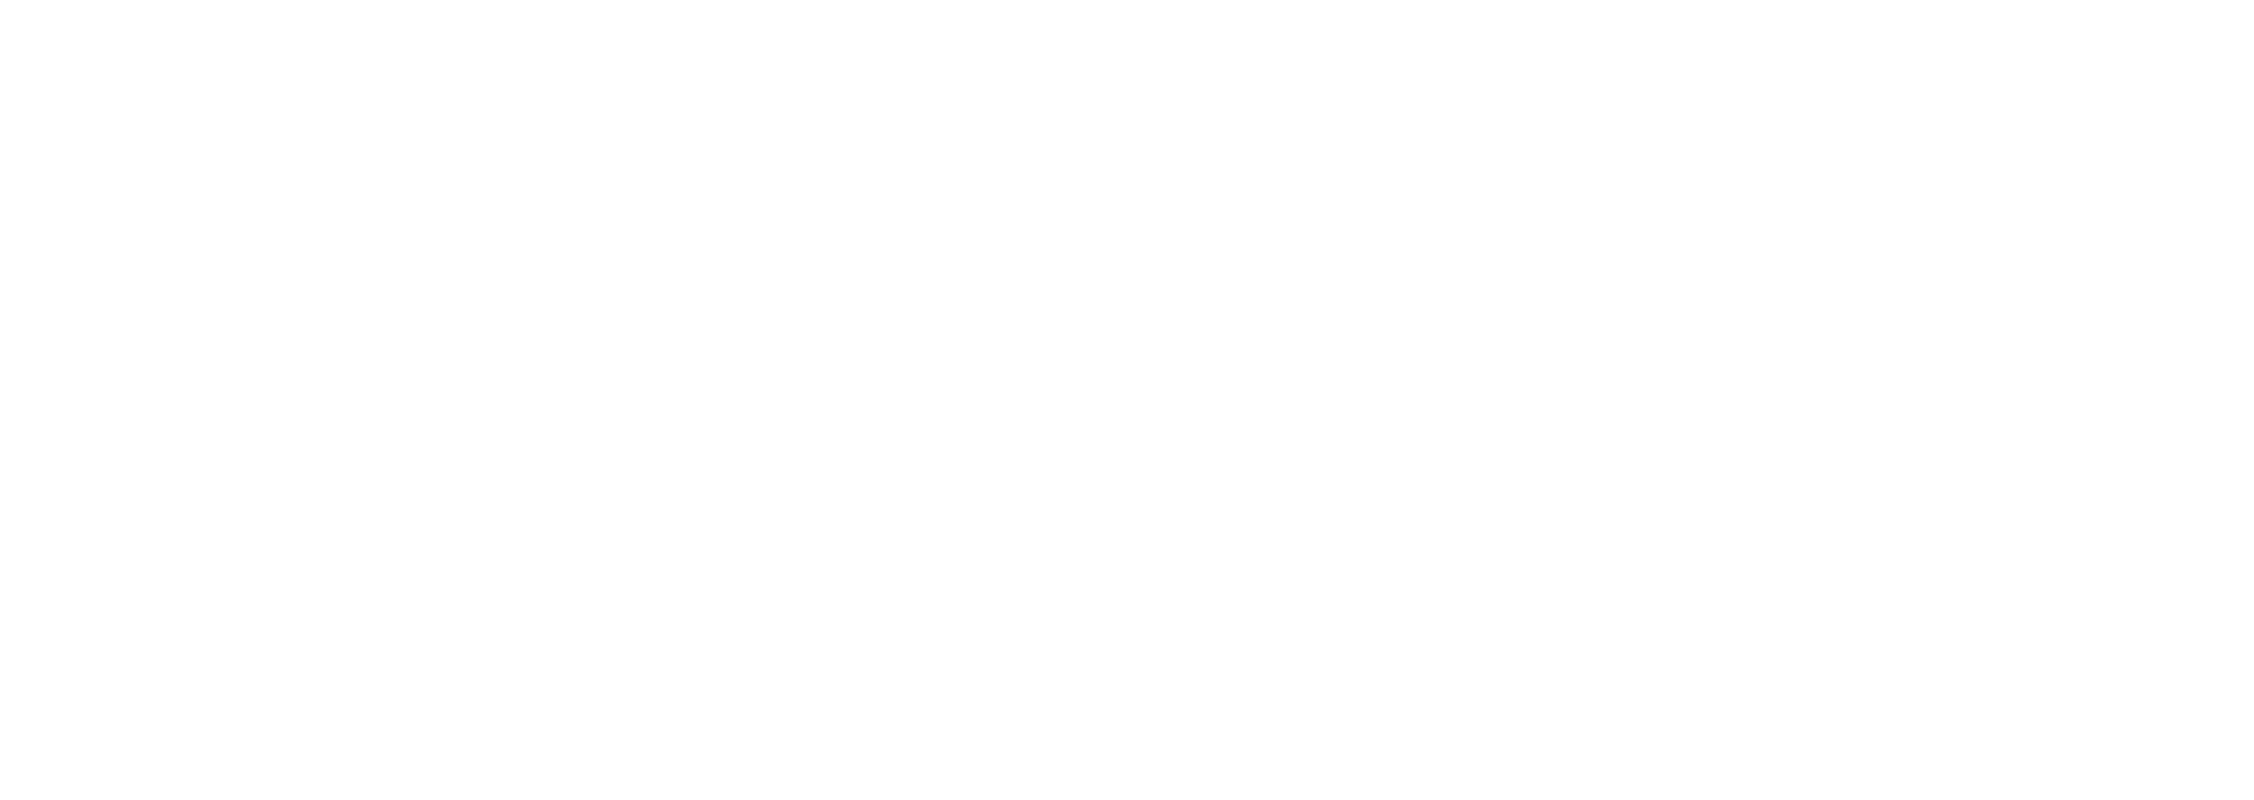 Actionable.co